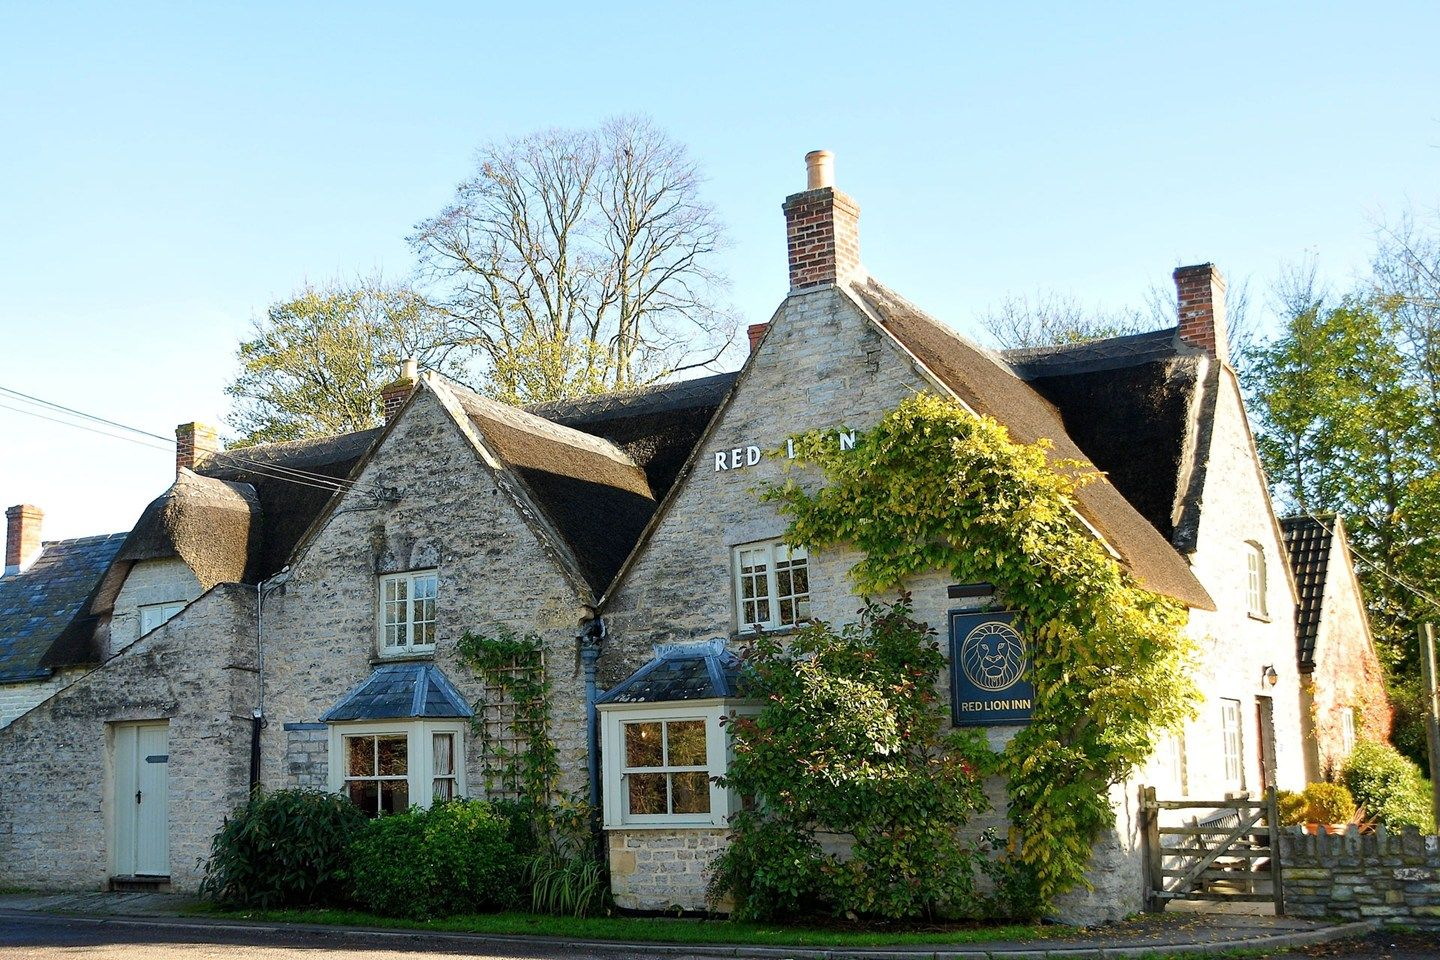 The Red Lion Inn at Babcary, Somerset